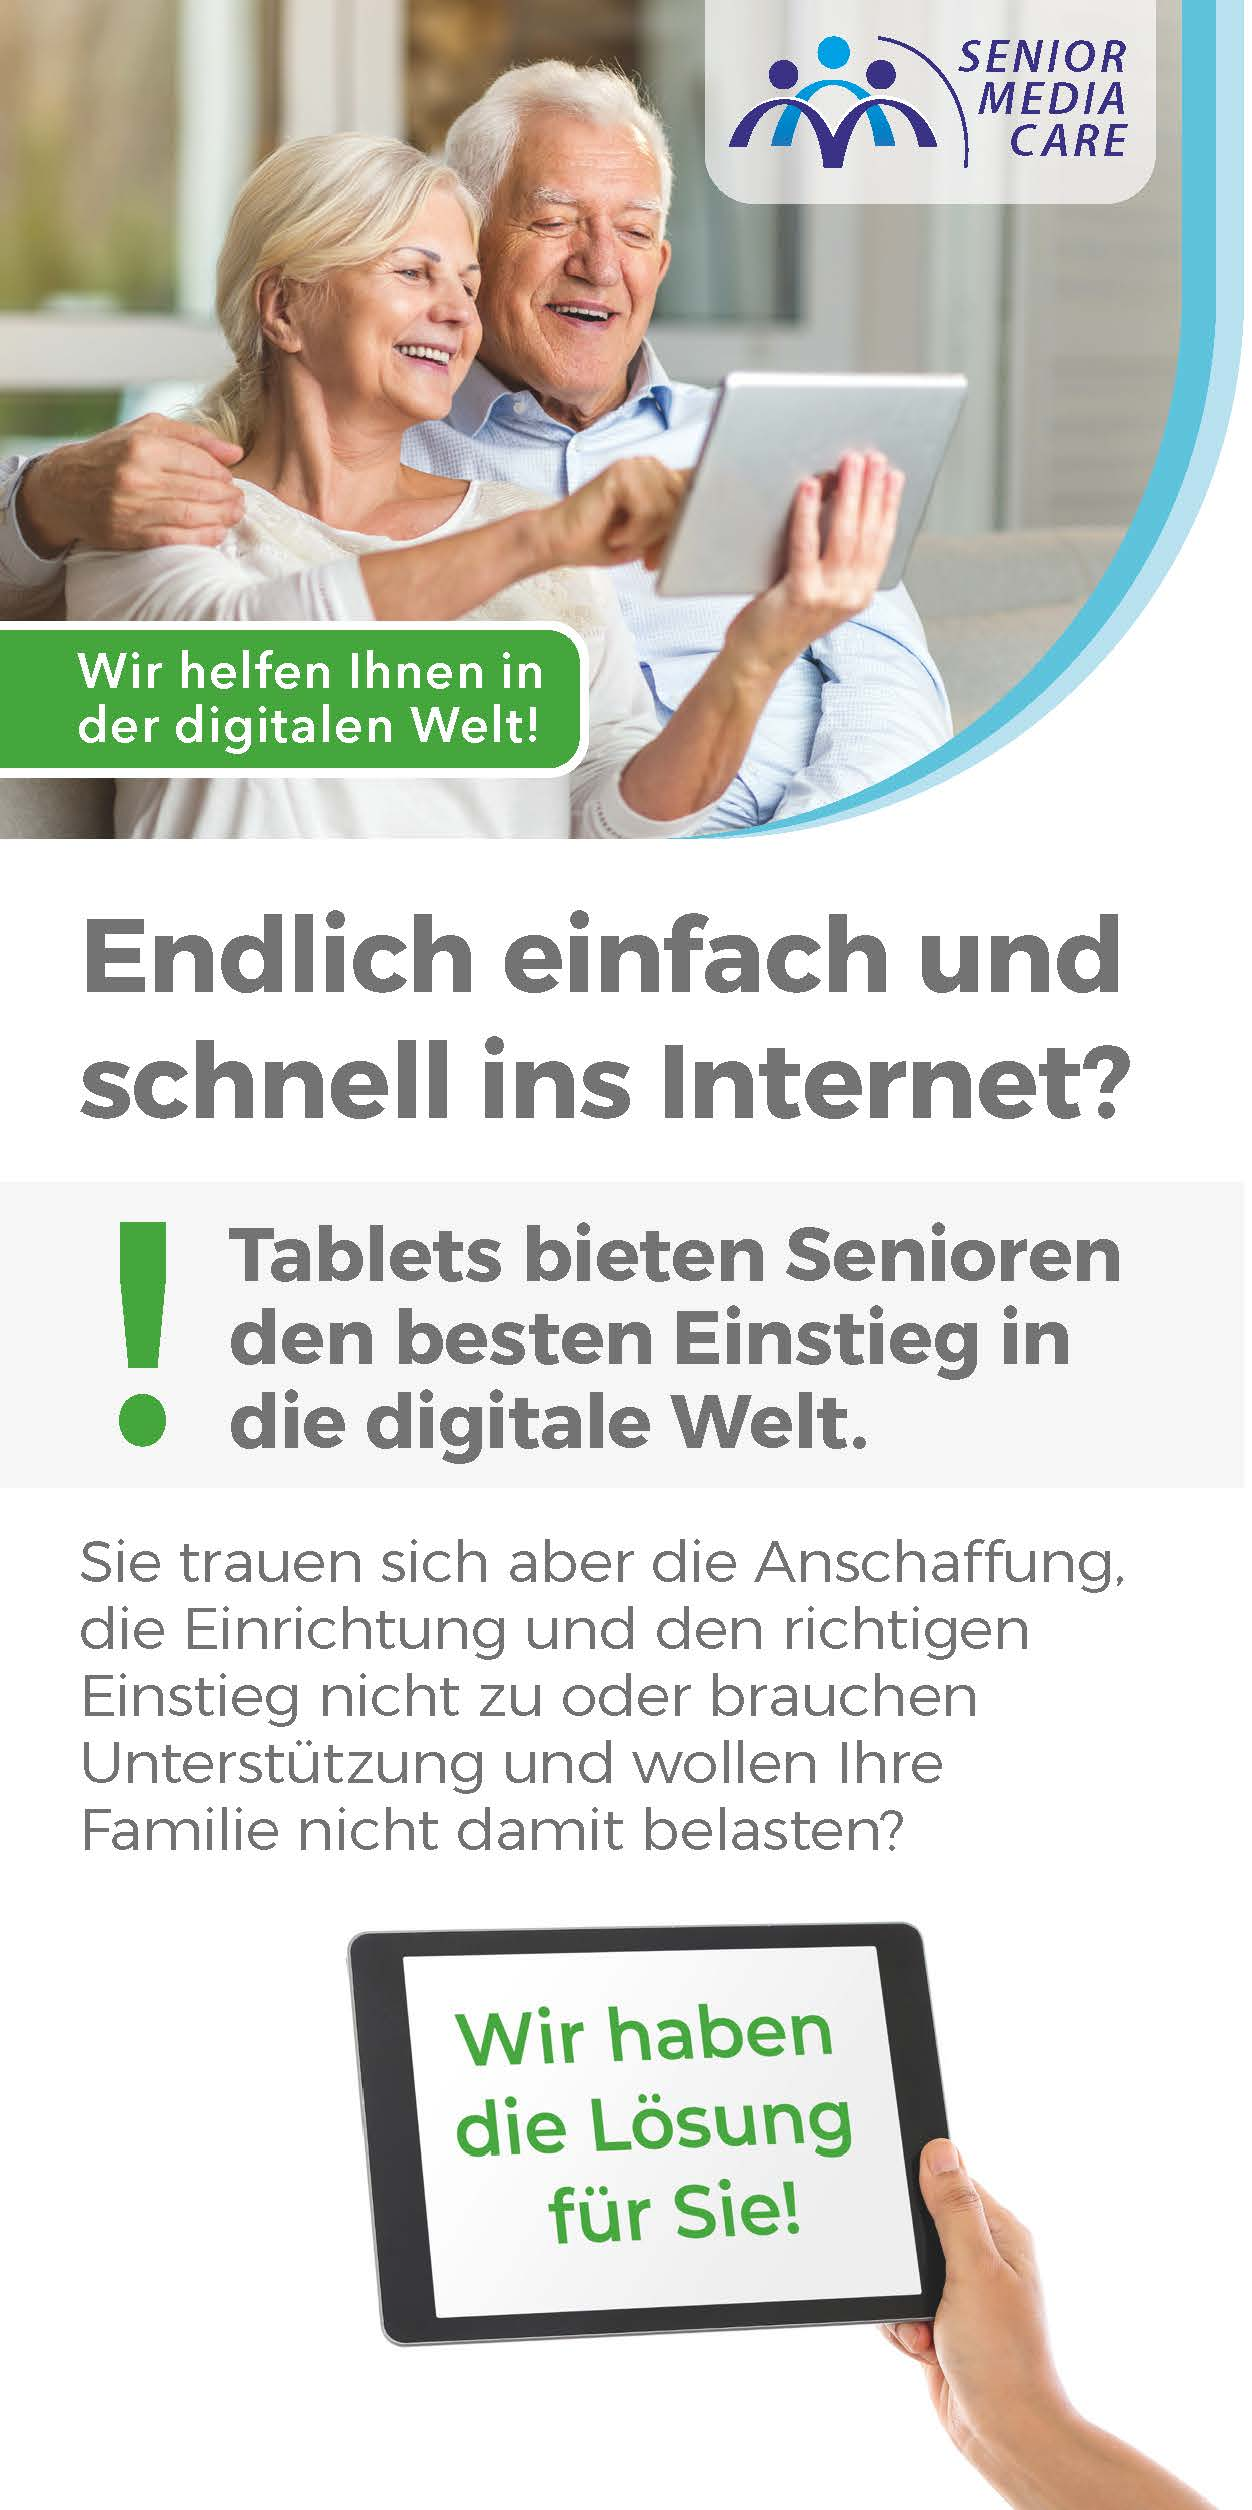 Senior Media Care Infobroschüre